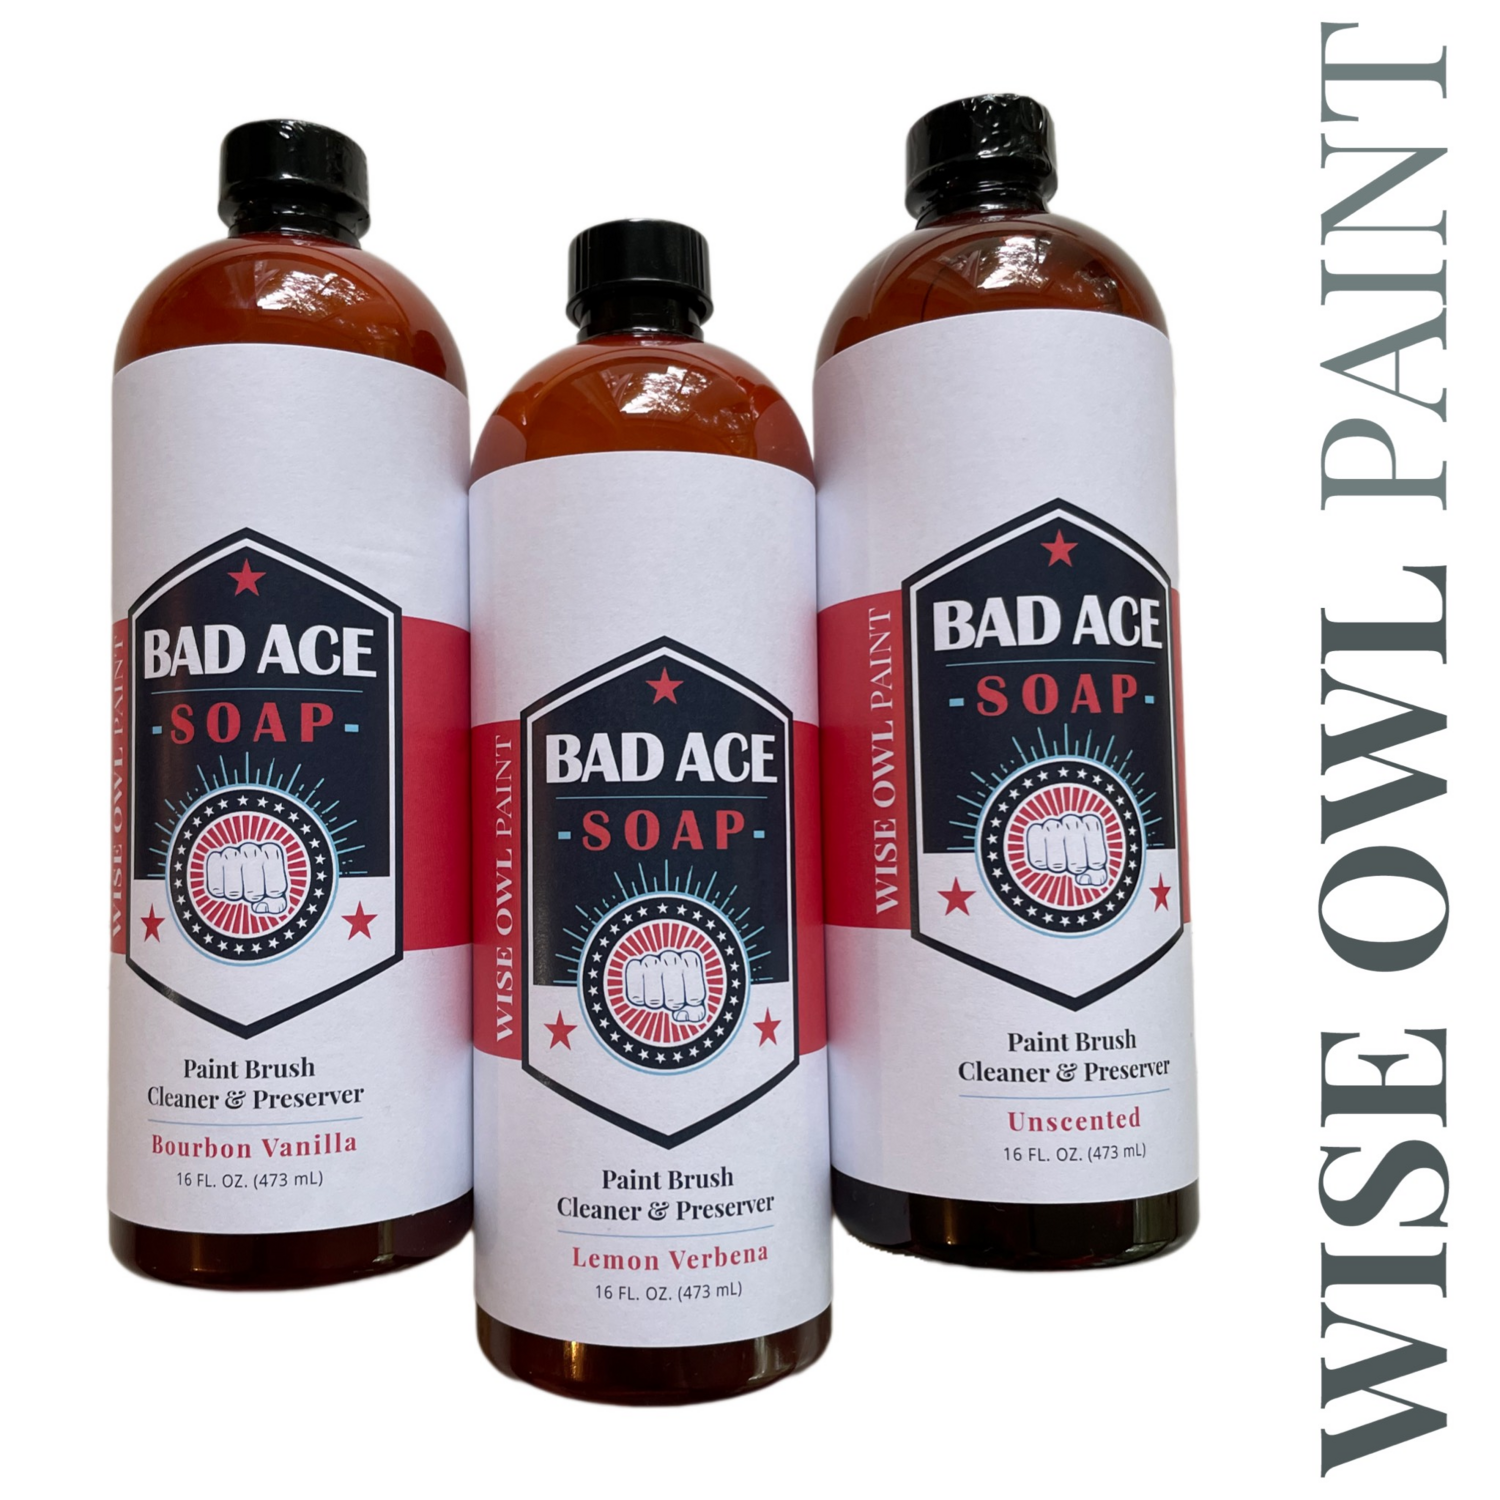 Bad Ace Soap